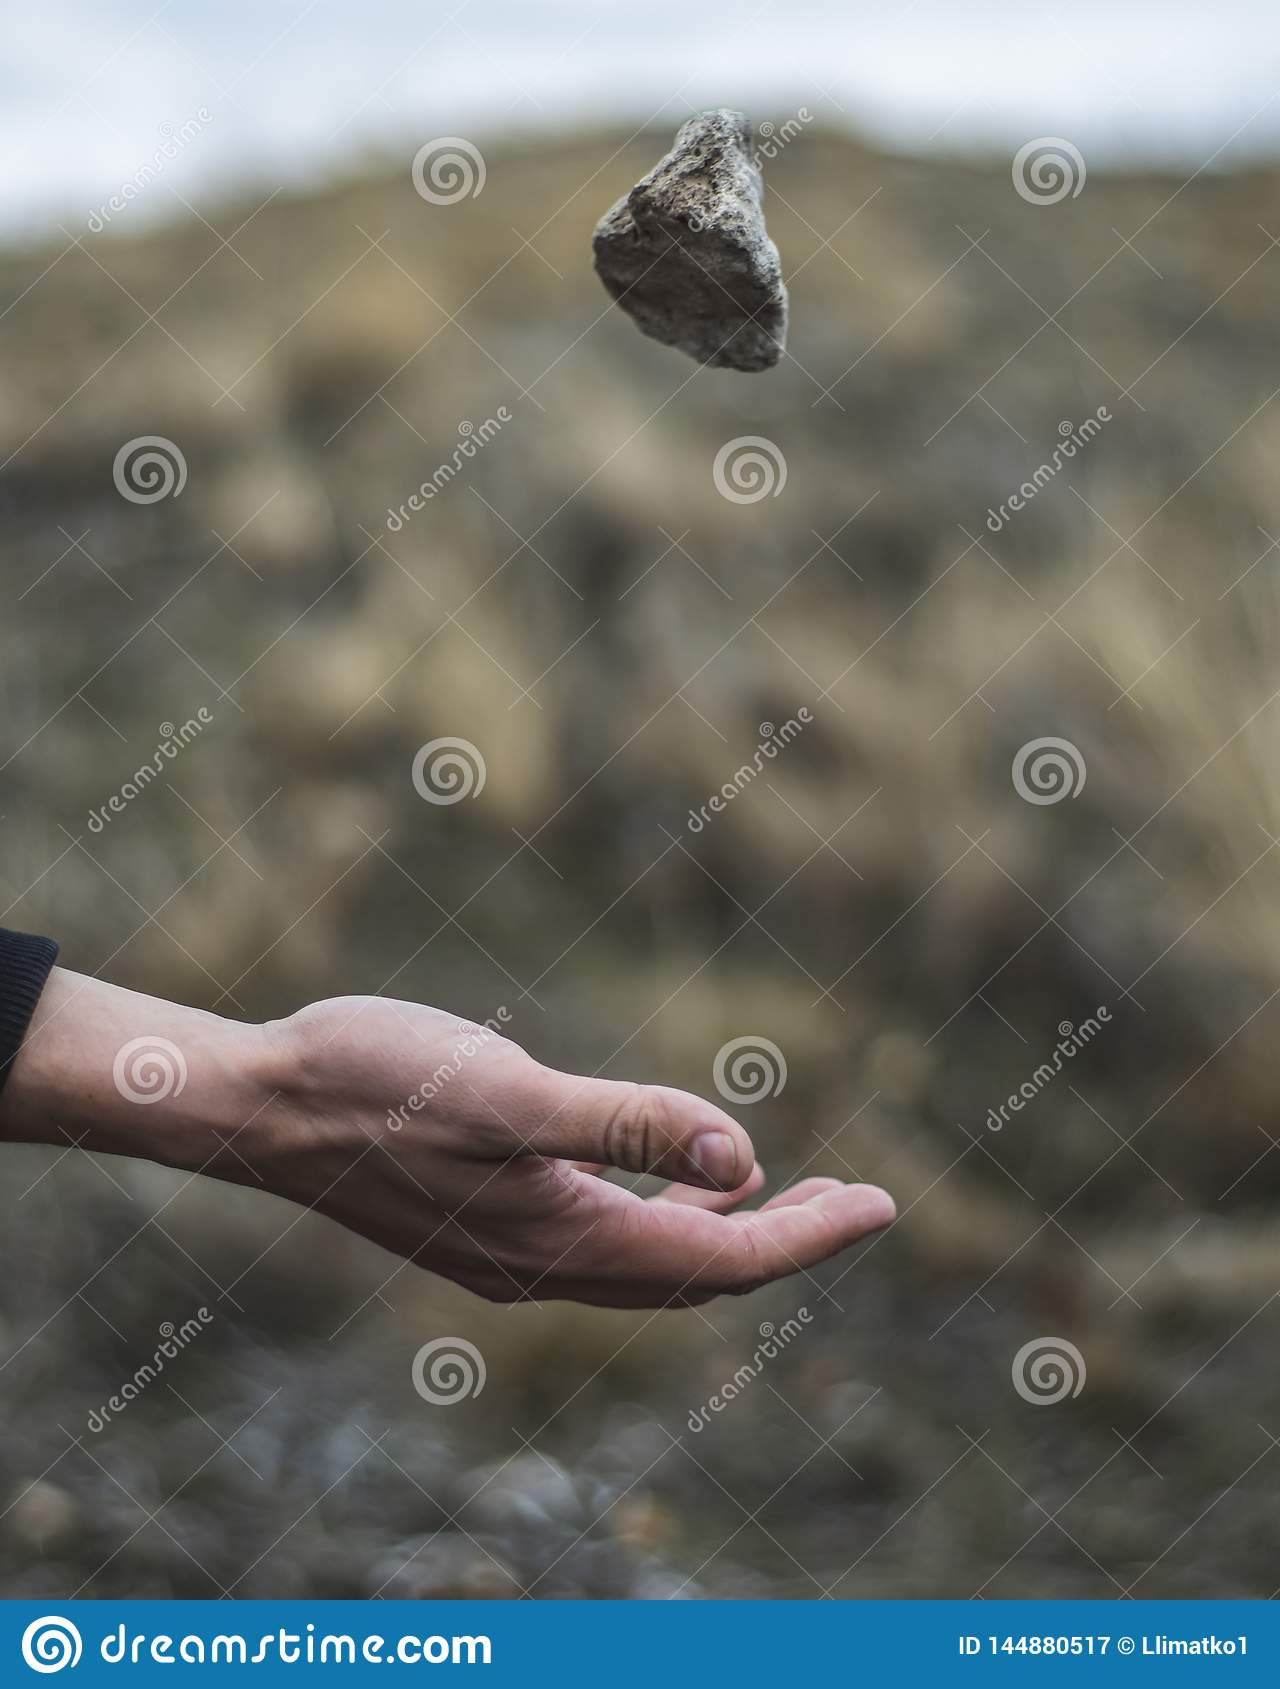 Stone hovering over the arm. A stone thrown into the air. Gravity